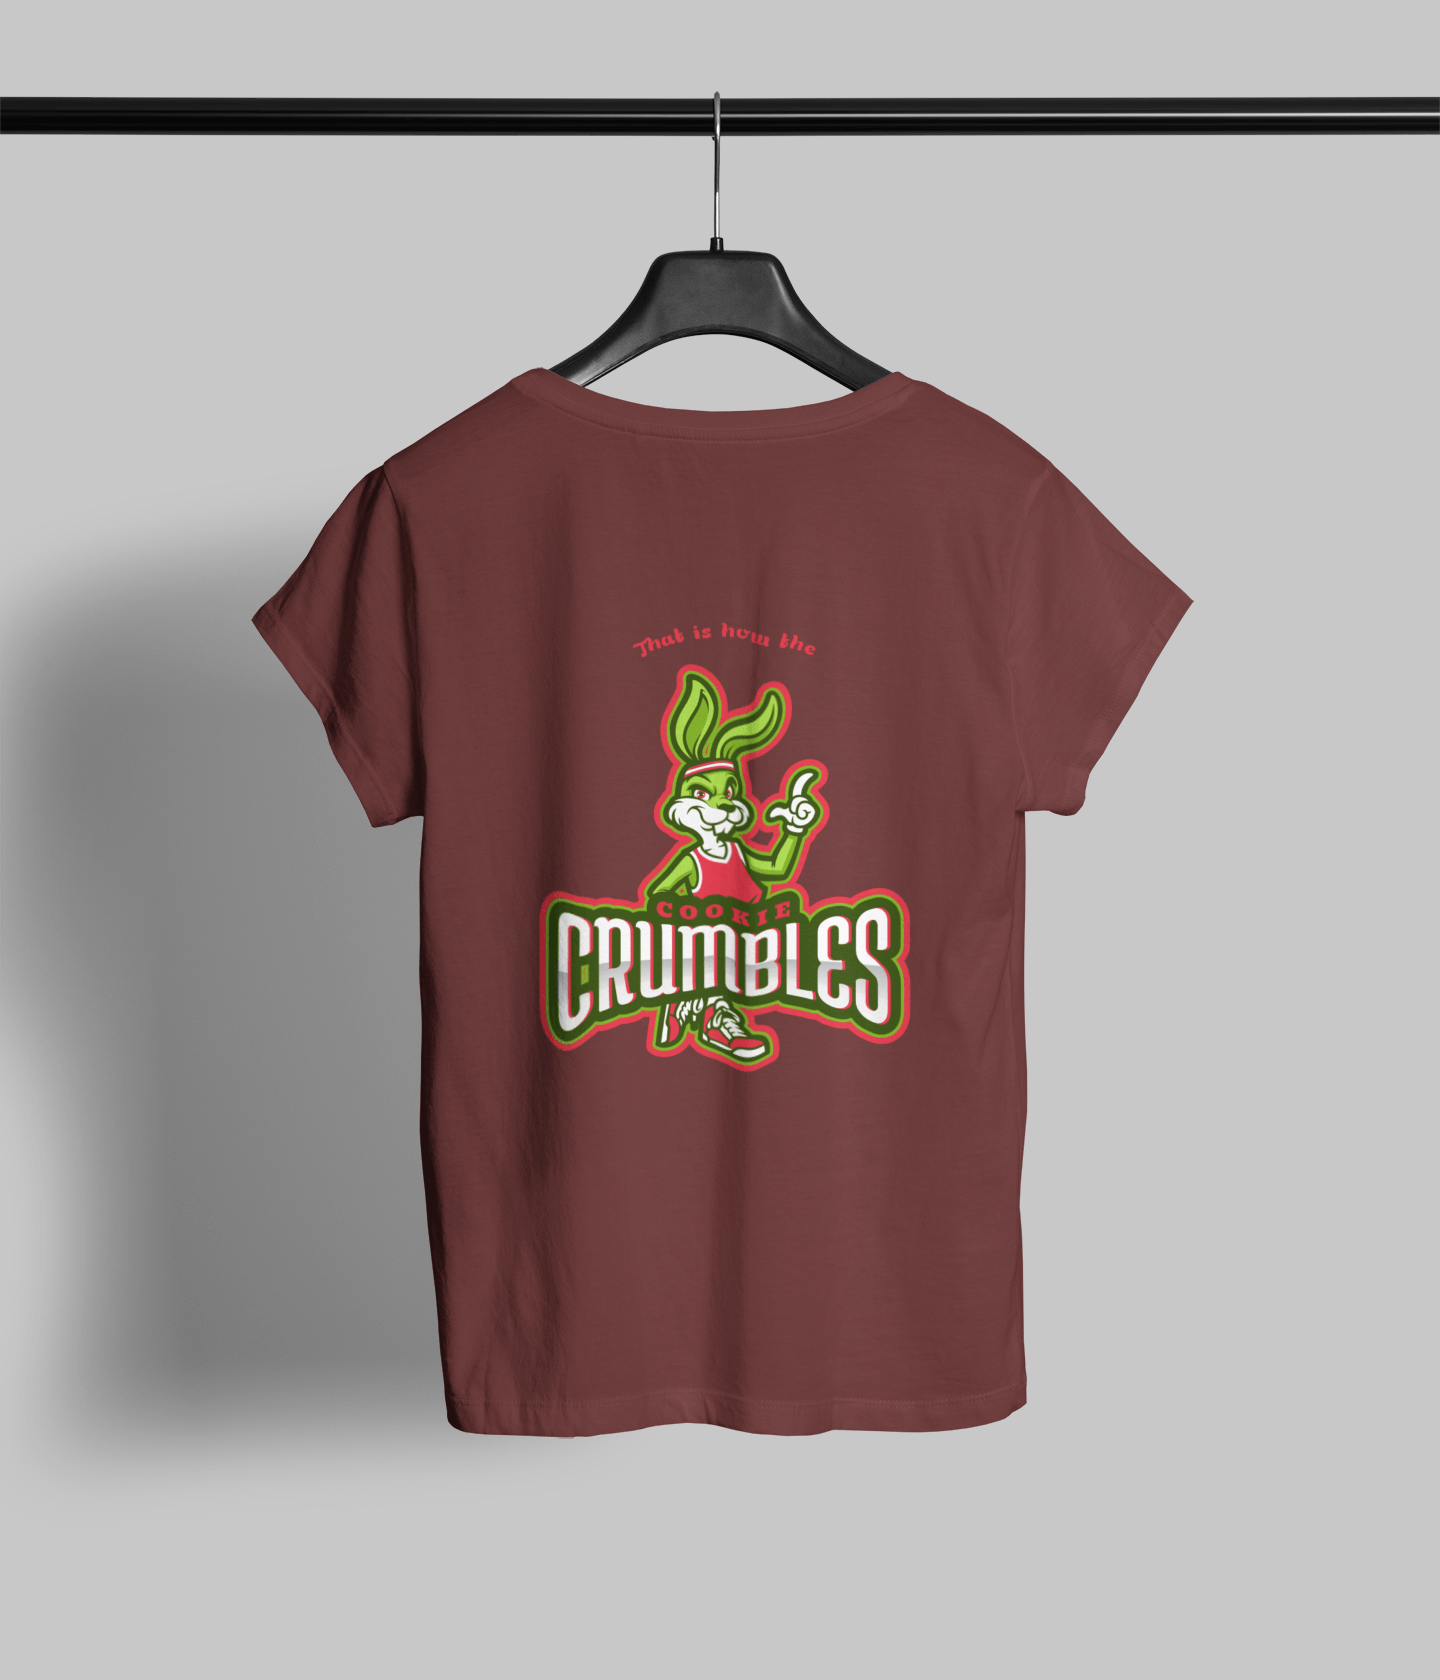 Cookie Crumbles Clothing Printrove Maroon 1